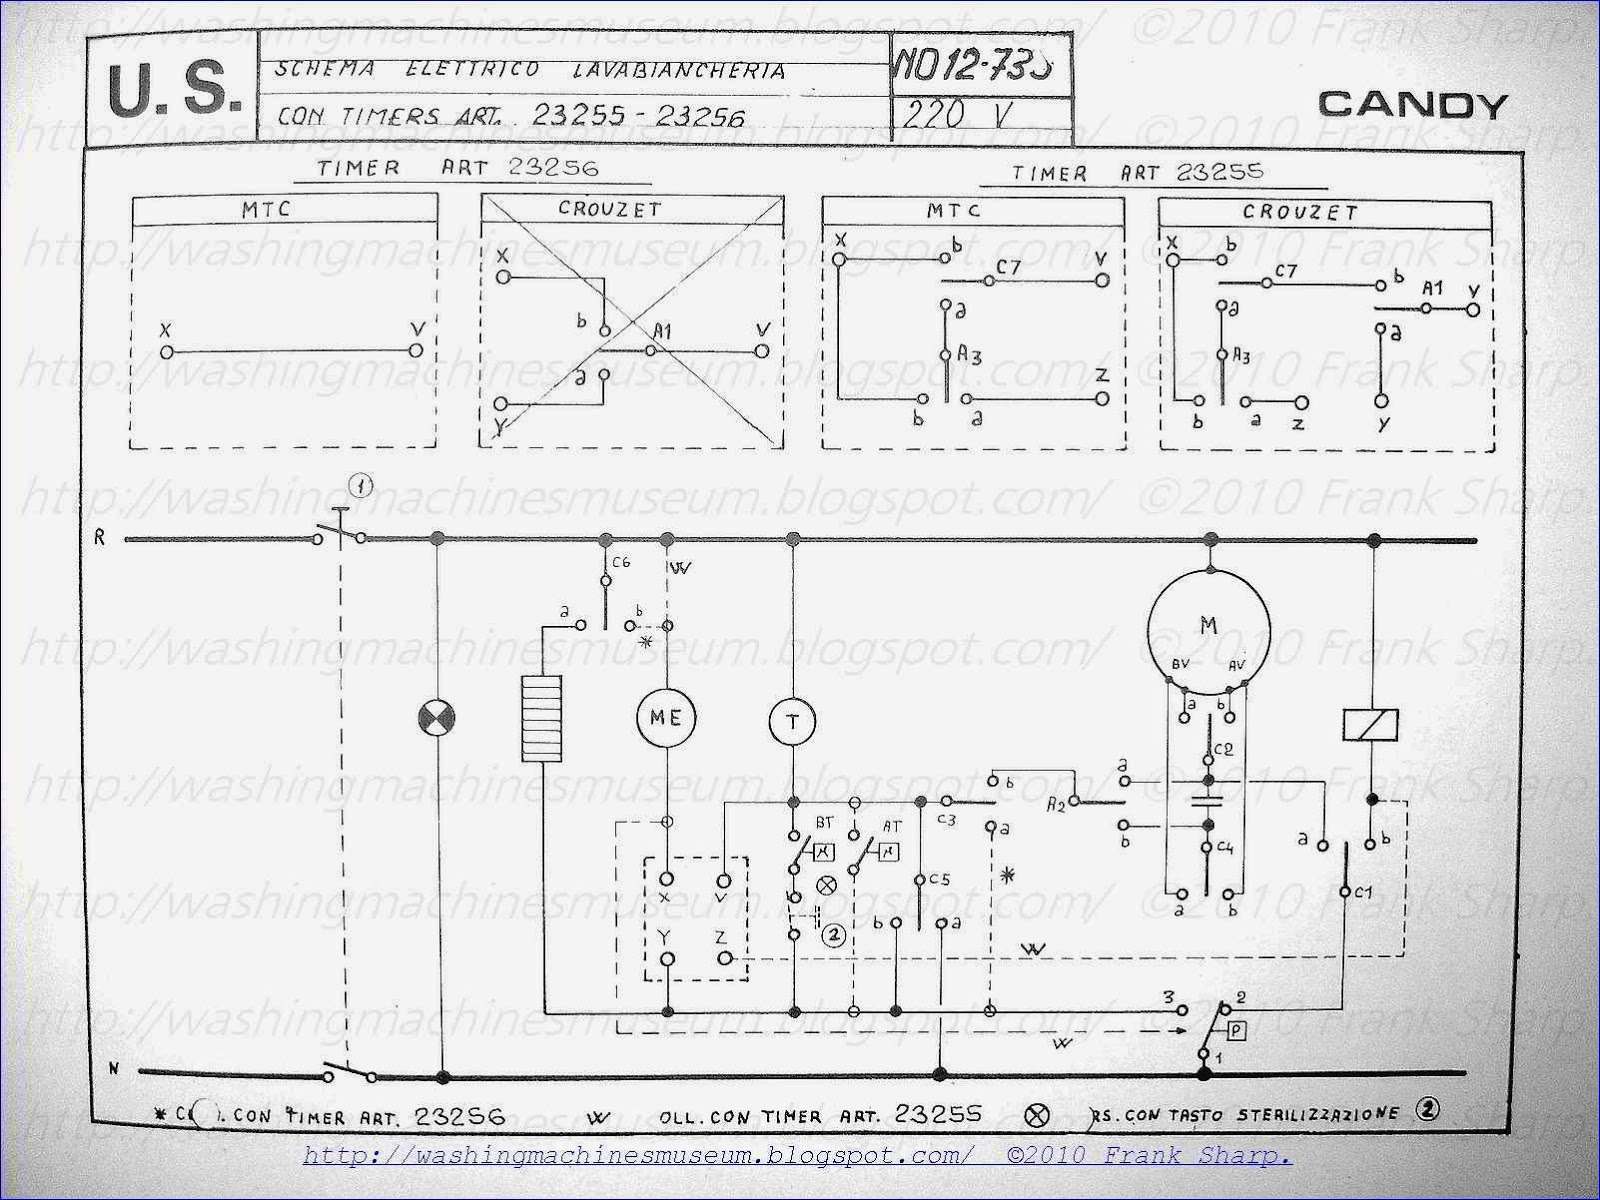 Stunning machines wiring diagram wires gallery best image wire miele dishwasher wiring diagram somurich asfbconference2016 Image collections